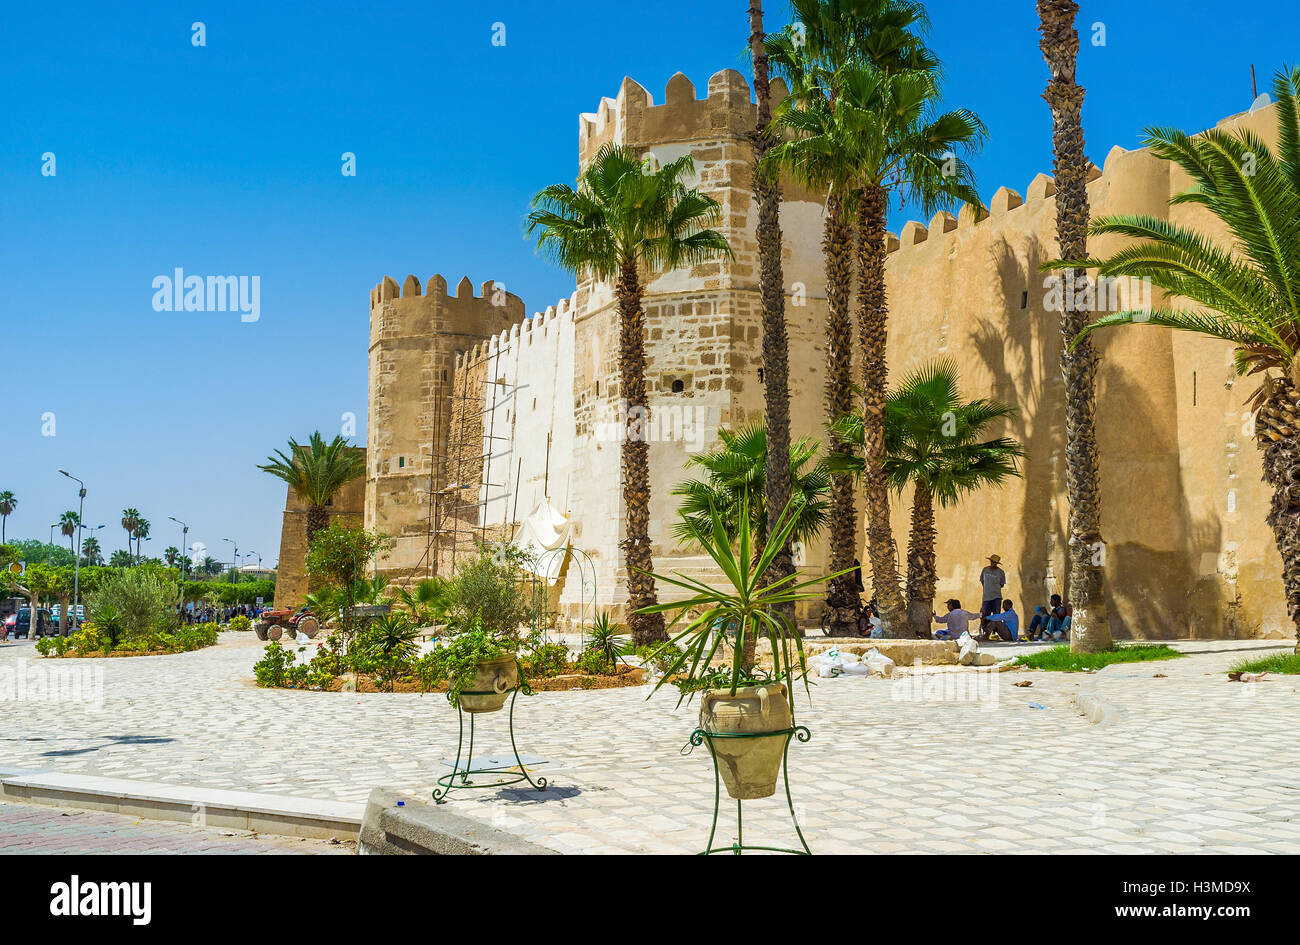 The Old Town Walls Of Sfax Surrounded By Tropic Garden In Sfax